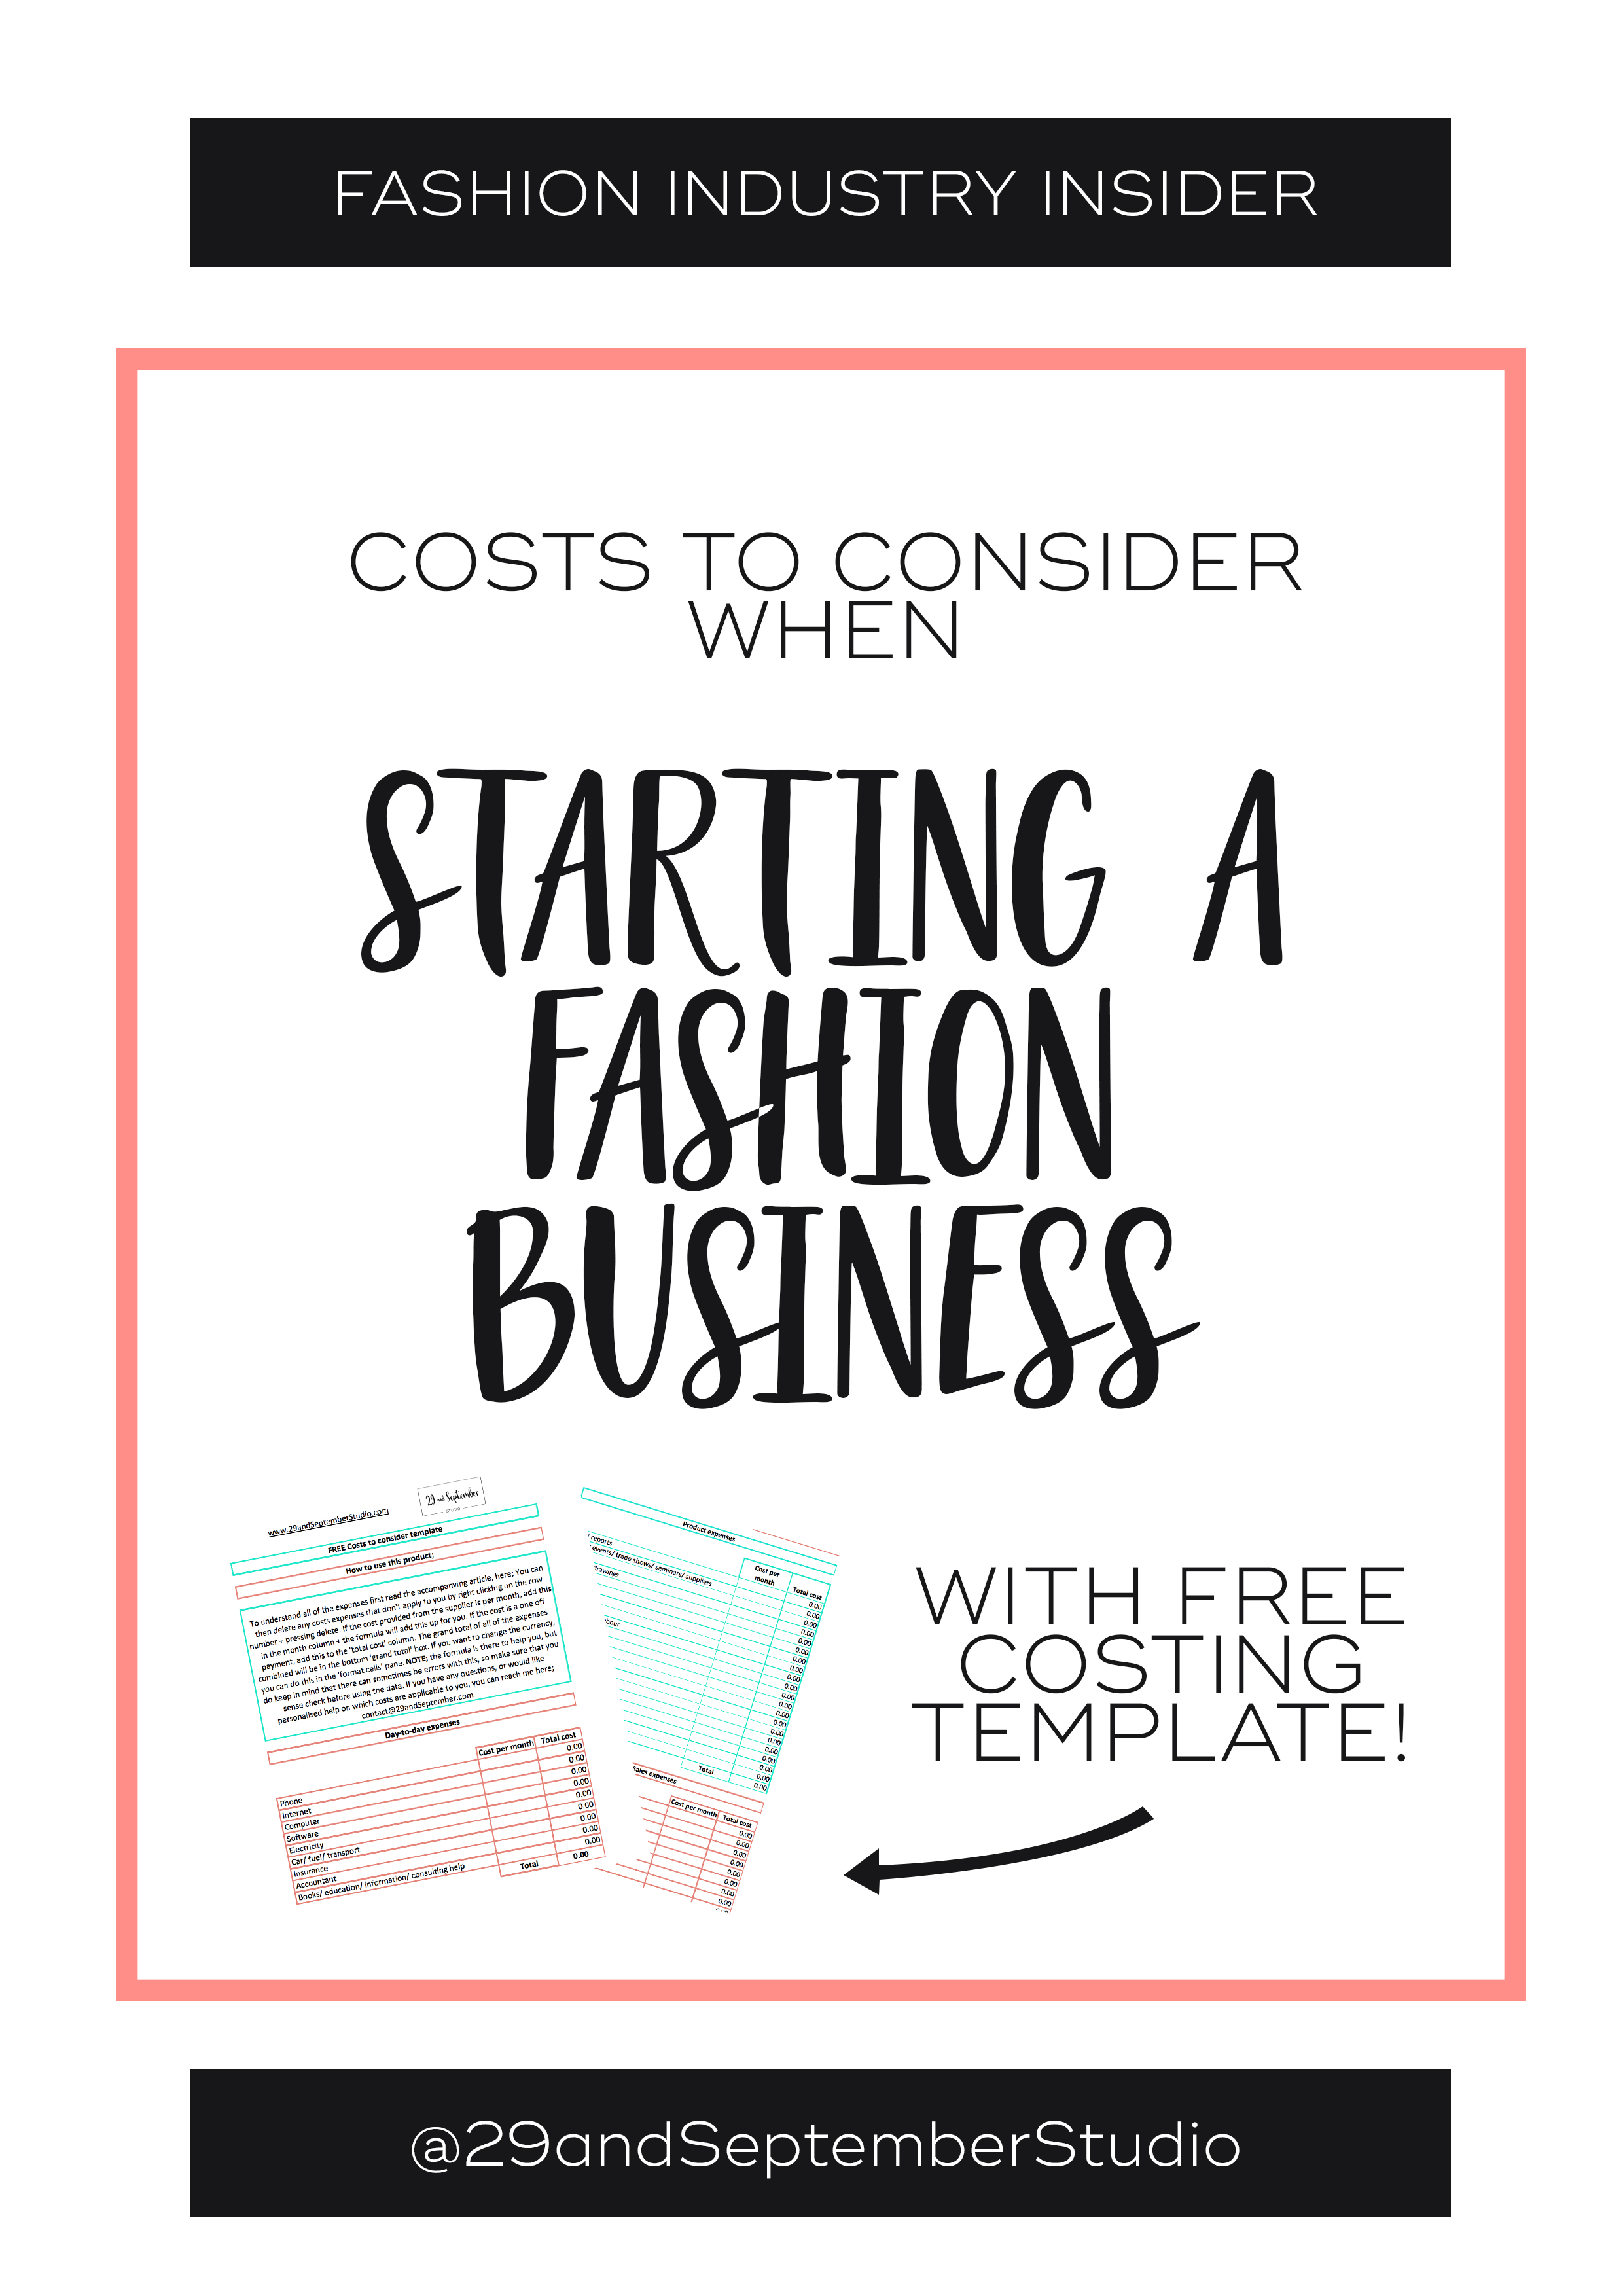 Costs to consider when starting a fashion business | Free download for fashion students, designers, fashion businesses, startups and new brands to help them understand the fashion industry and work with manufacturers to get their clothes produced.